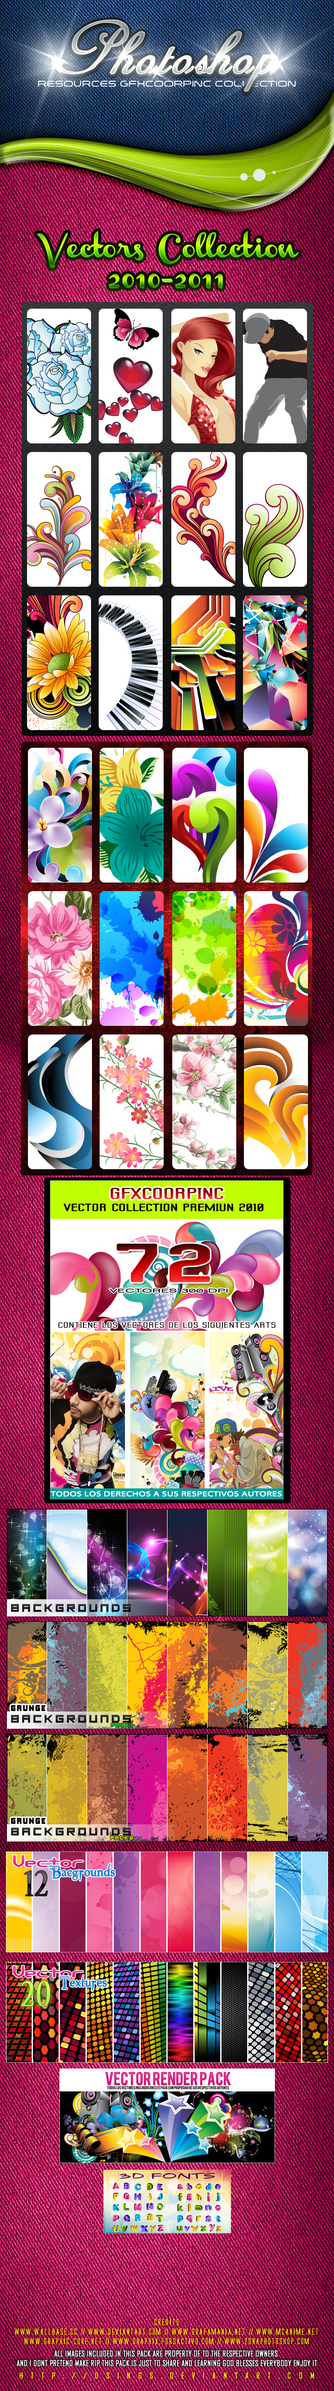 (RU)_Giga_Free_Vector_Collection_2010-2011 by Dsings